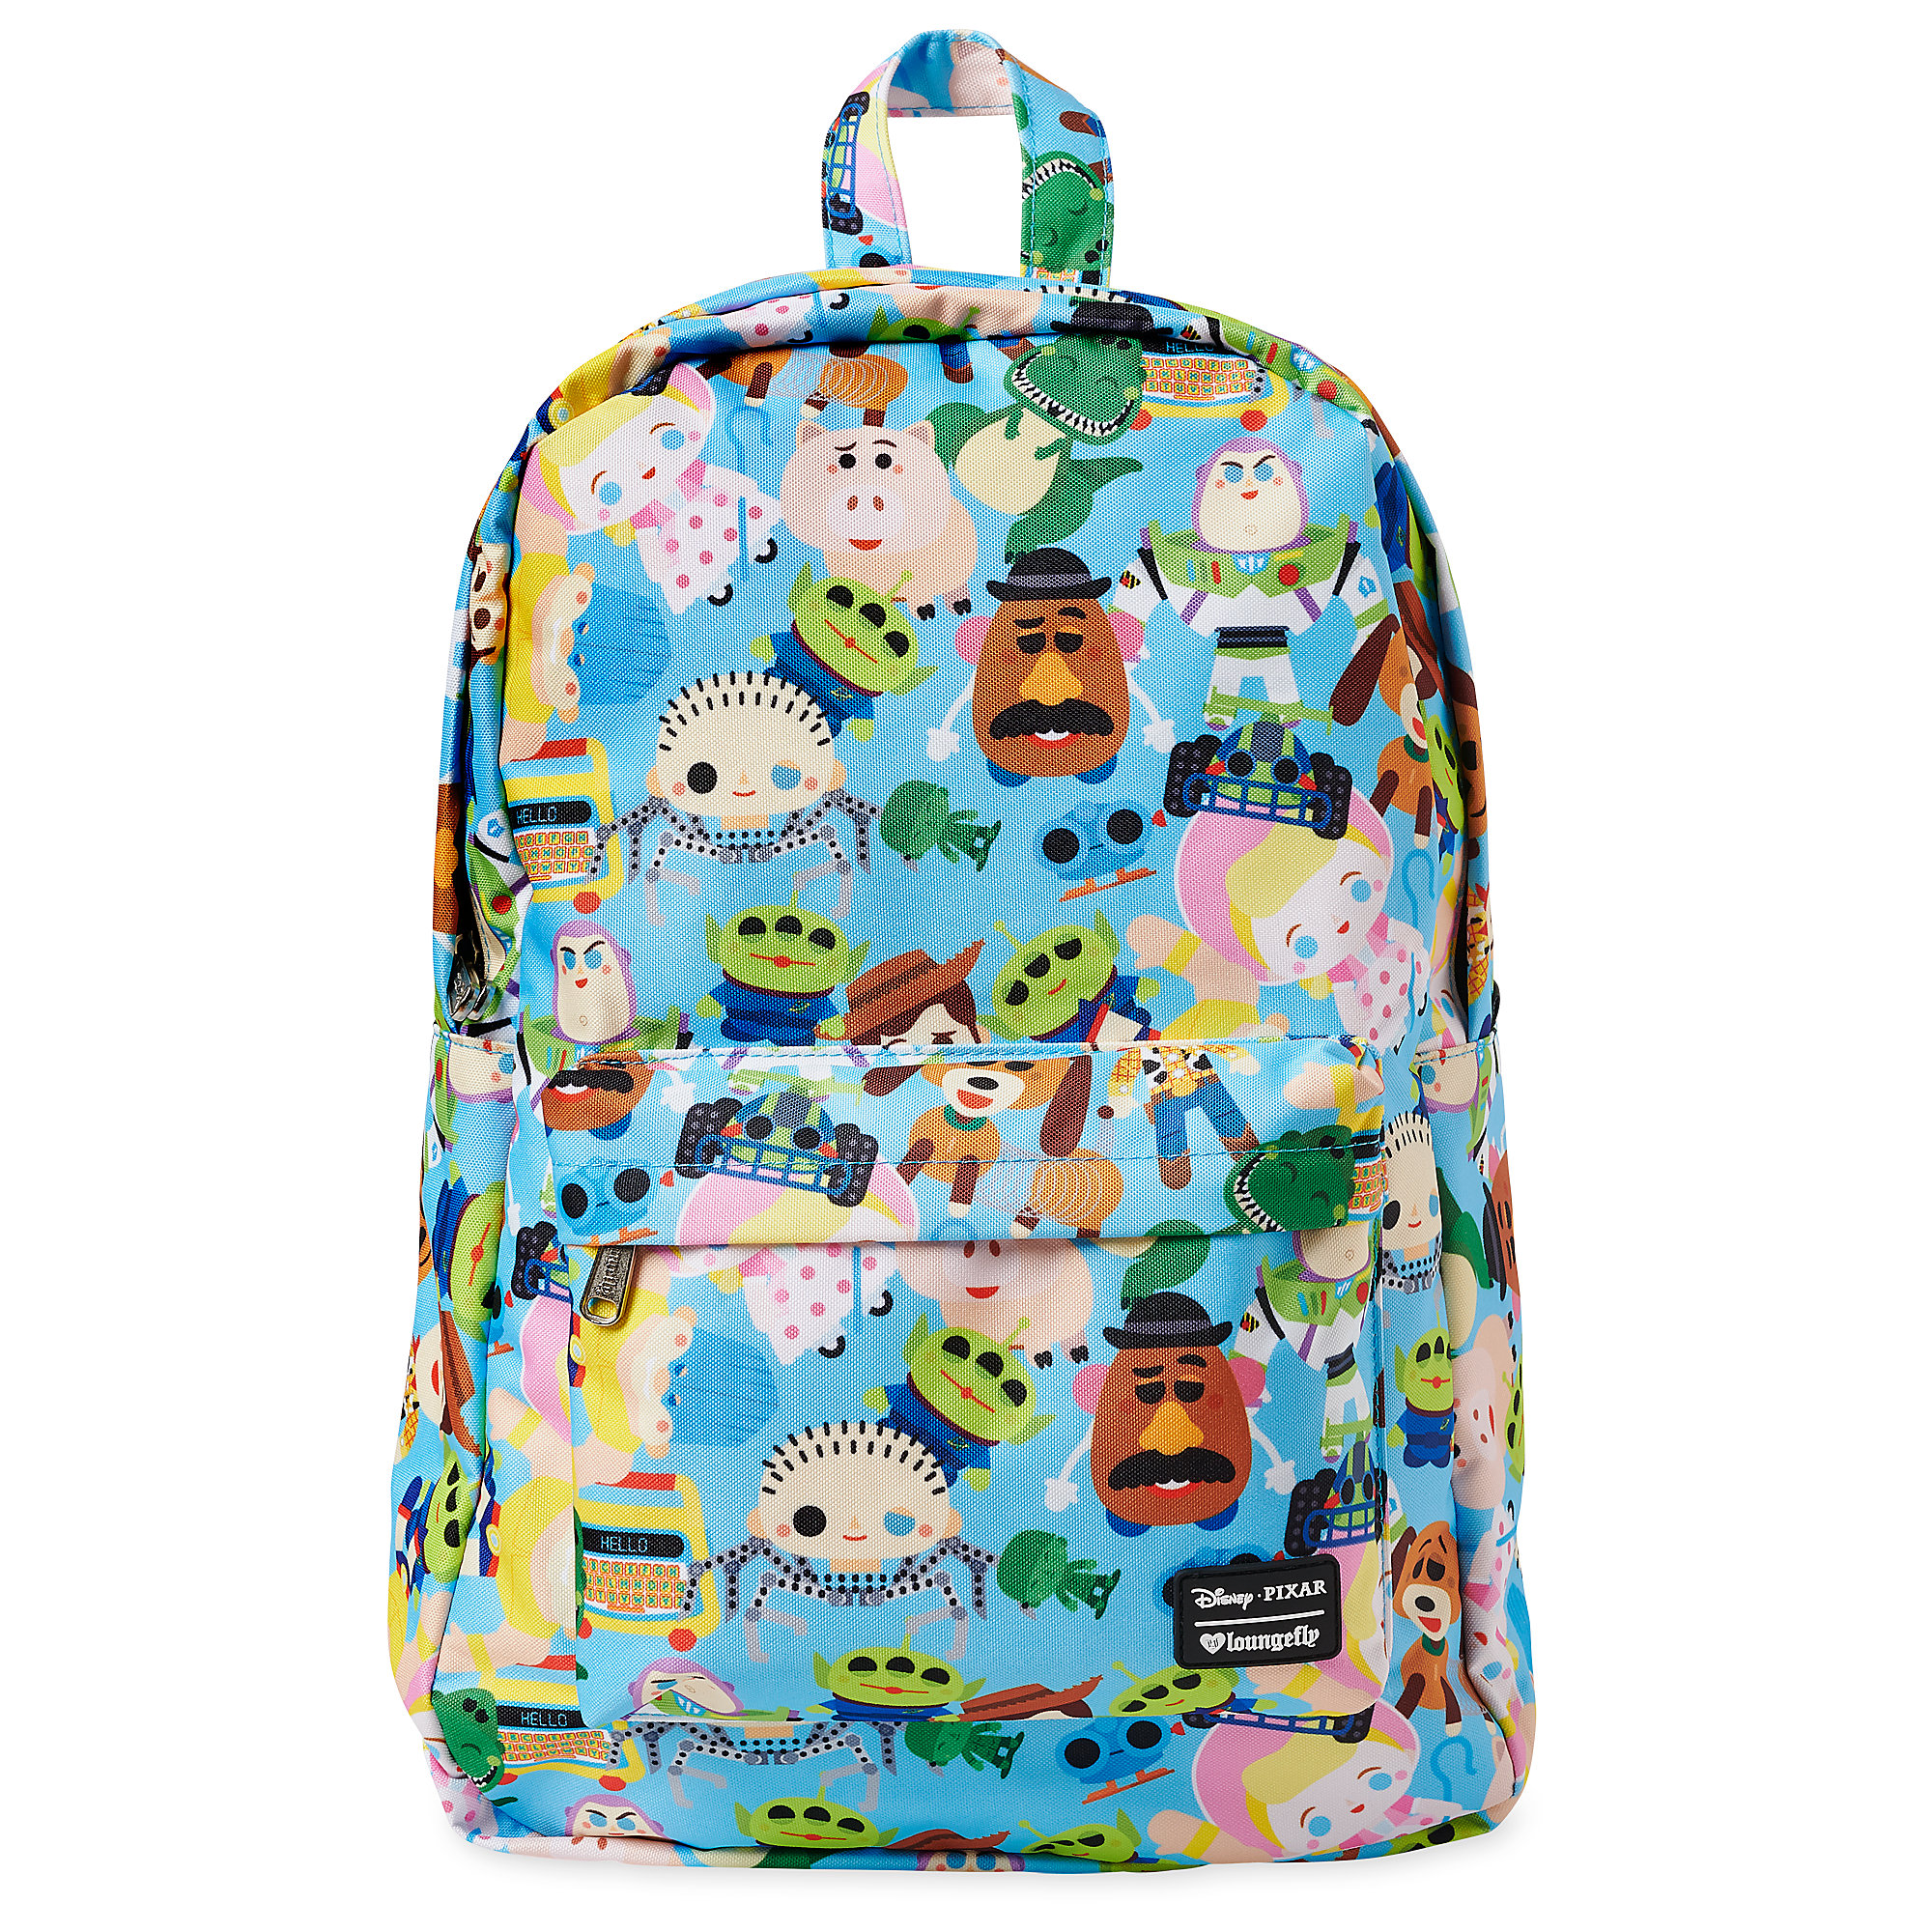 d83dee8f4be Details about Loungefly x Disney Toy Story Chibi AOP Backpack